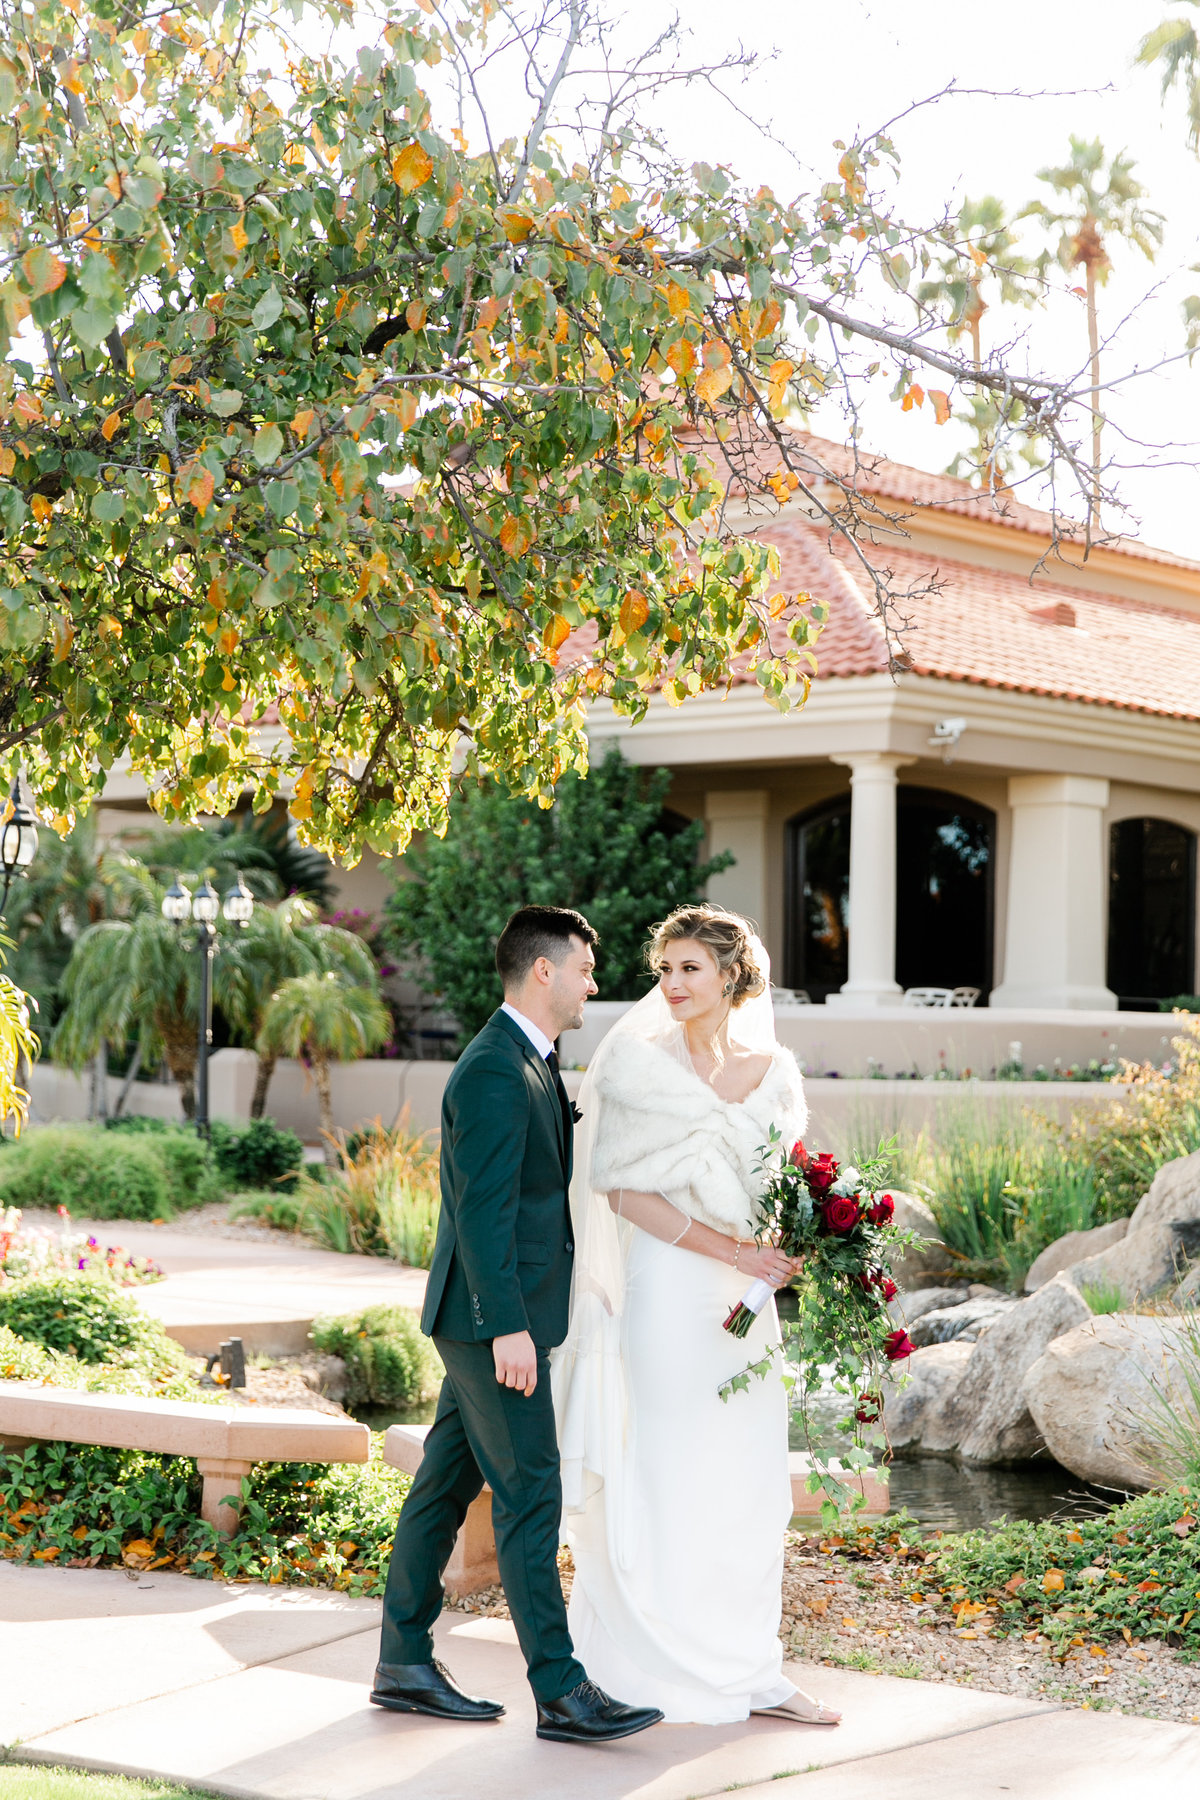 Karlie Colleen Photography - Gilbert Wedding - Val Vista Lakes - Brynne & Josh-27